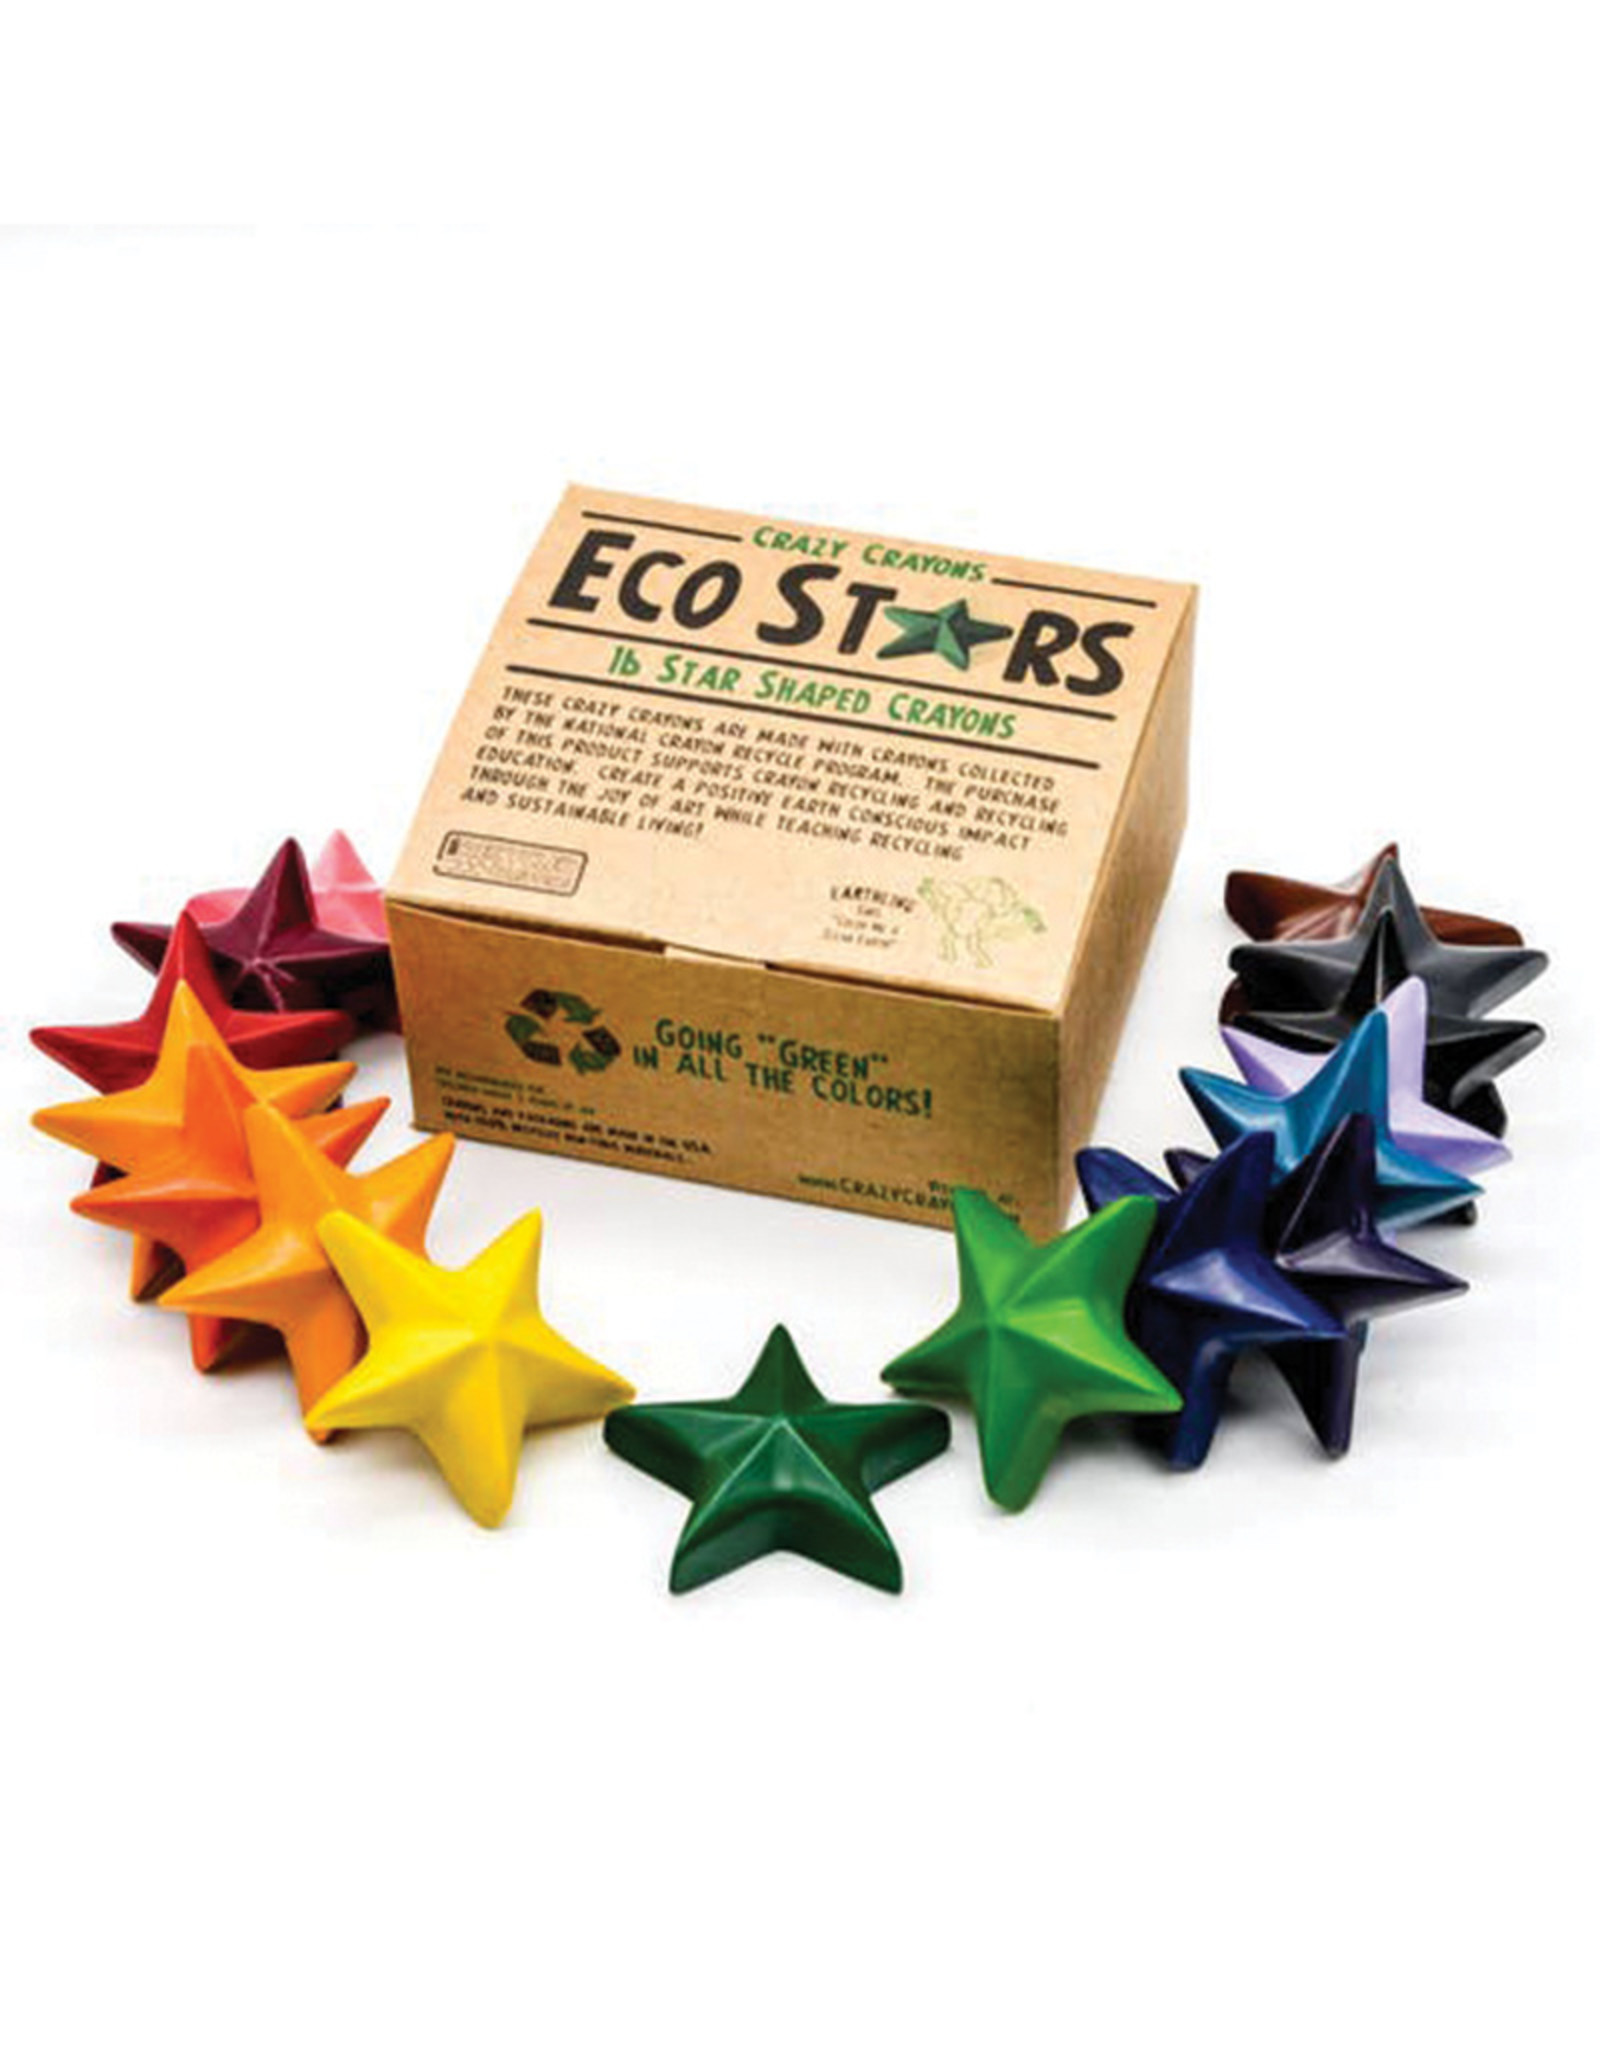 Crazy Crayons Eco Star Recycled Crayons